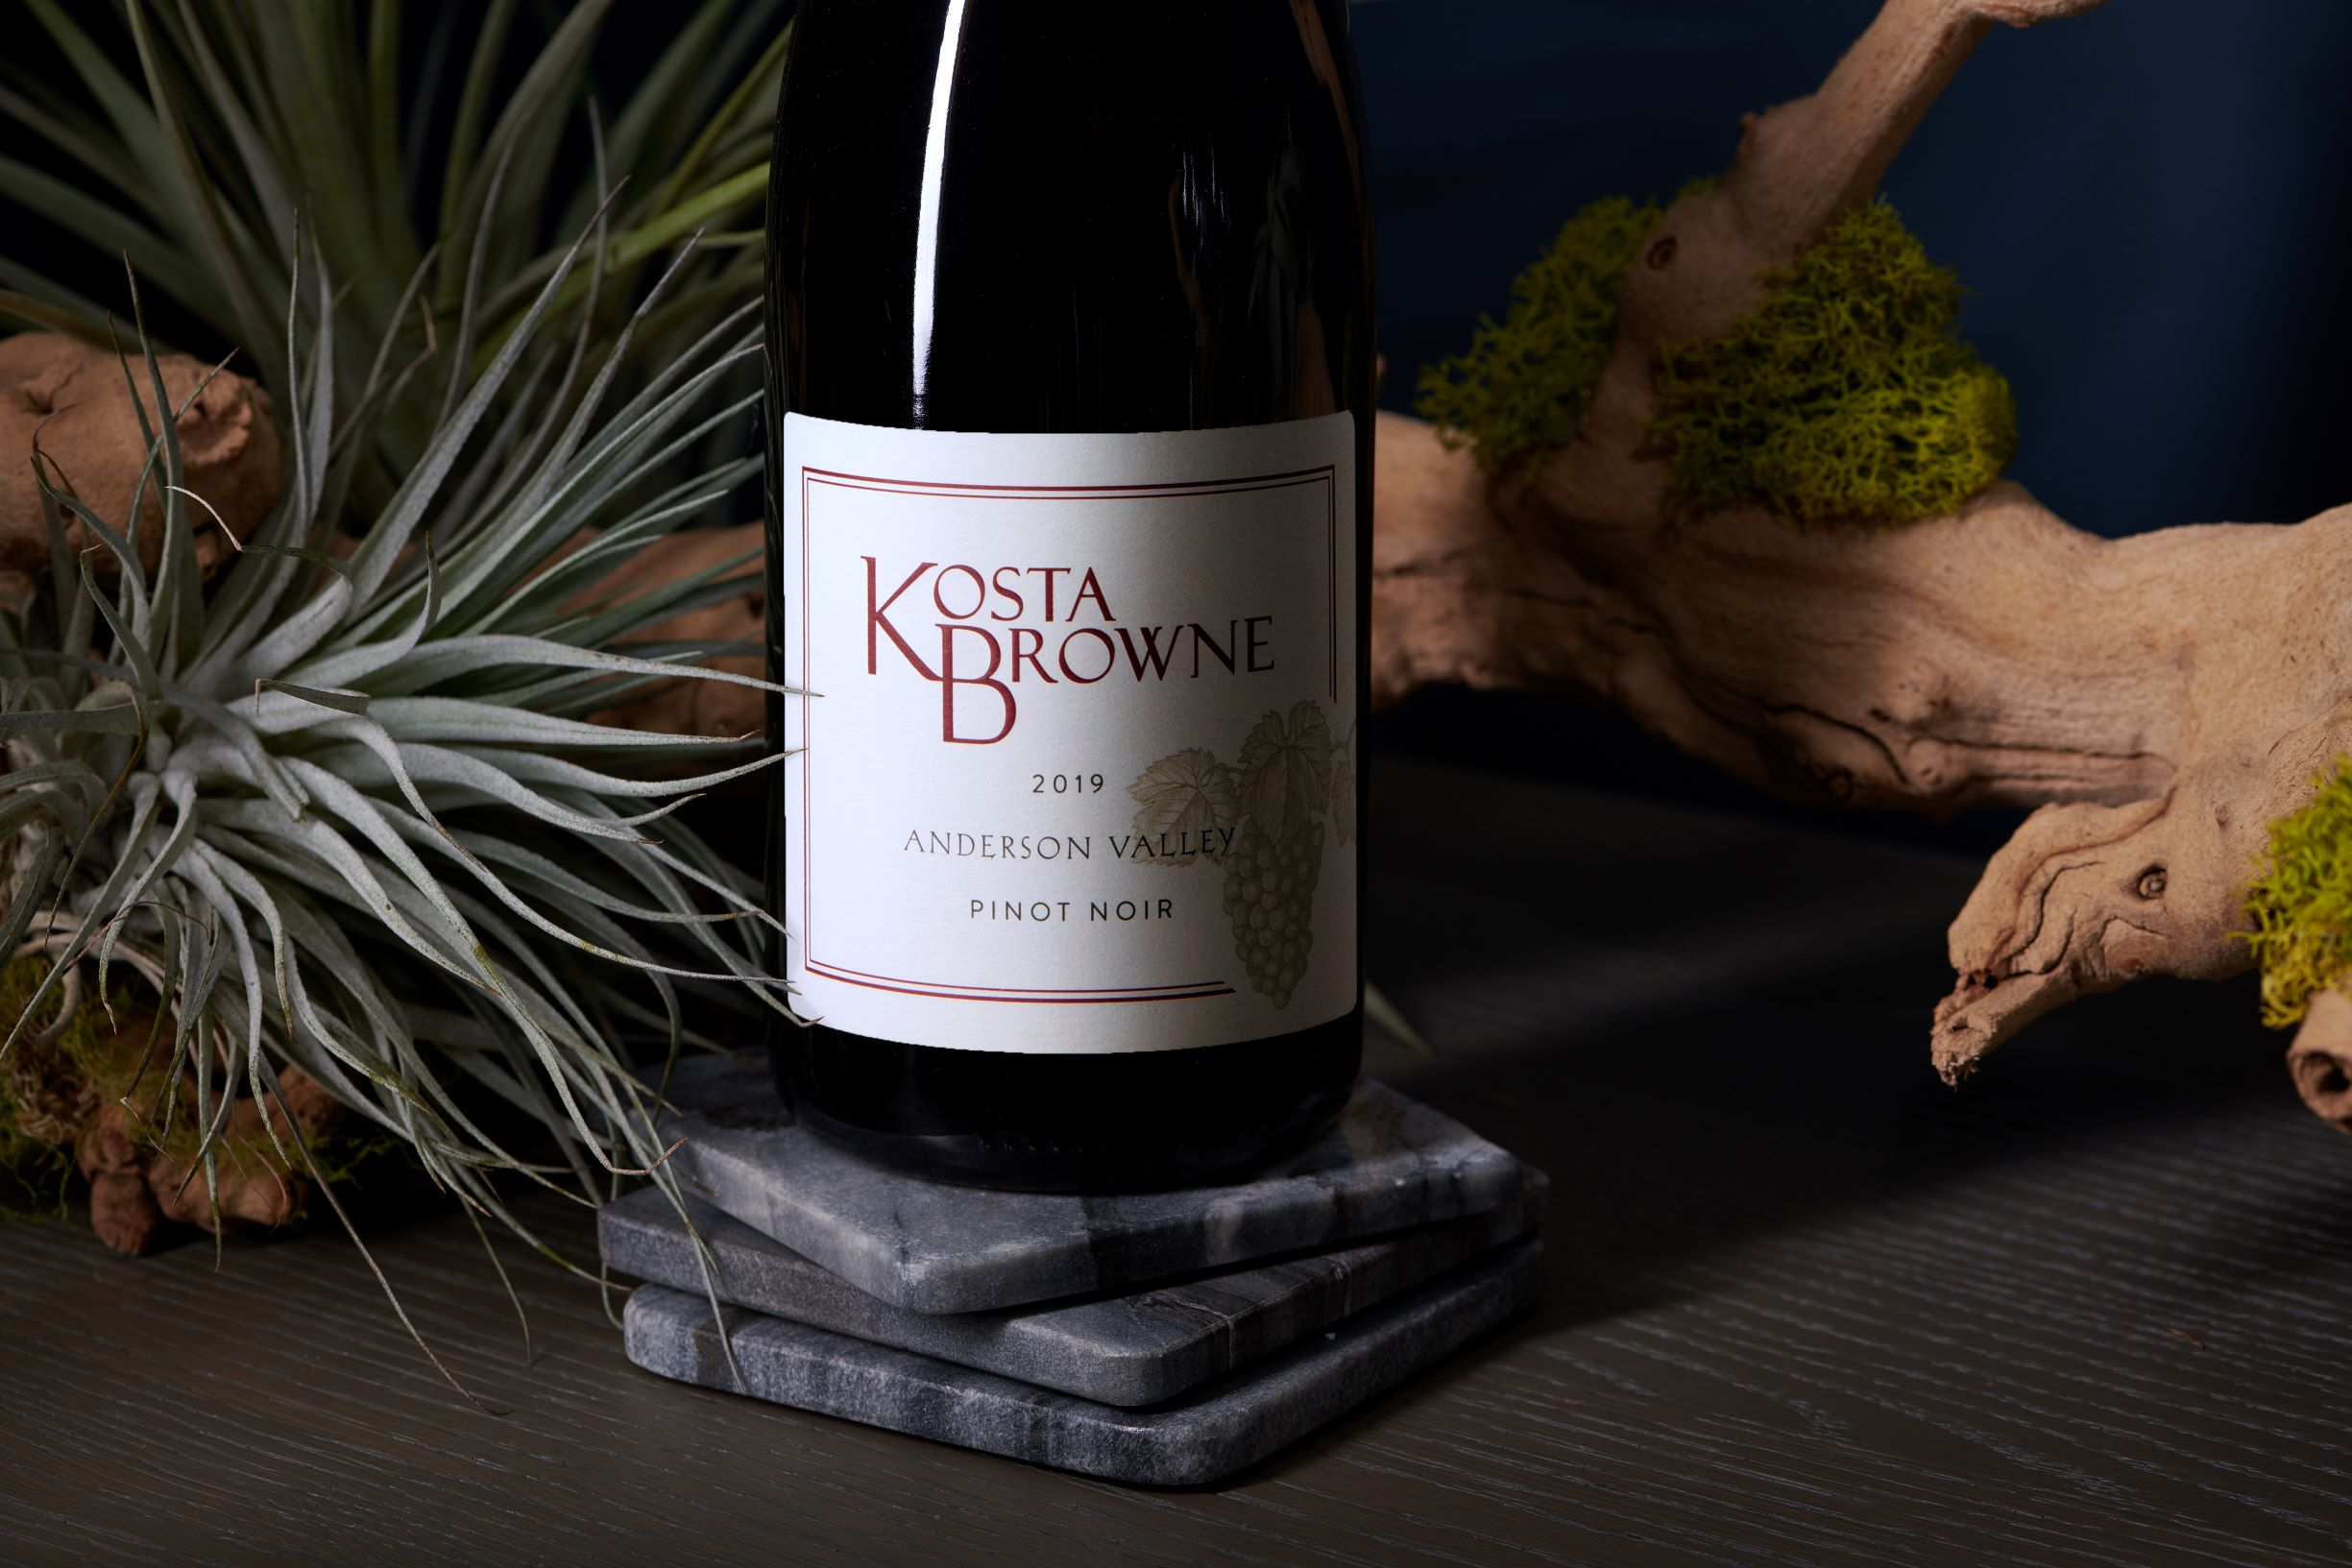 2019 Anderson Valley Pinot Noir - Kosta Browne Winery